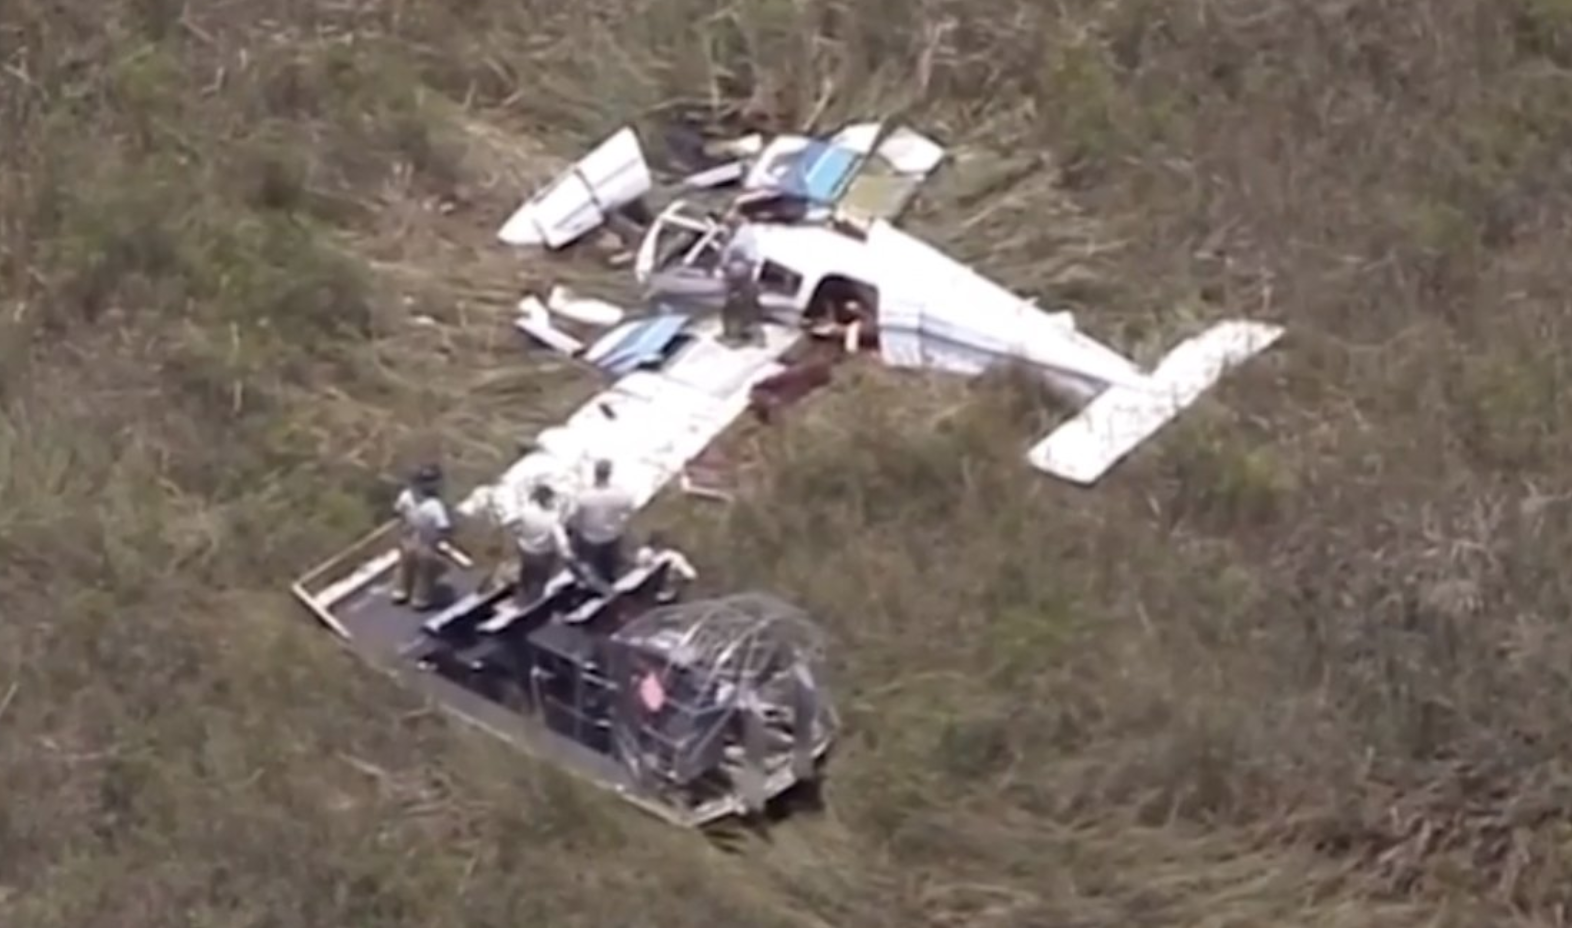 Miami Flight School Closes After Fatal Crash